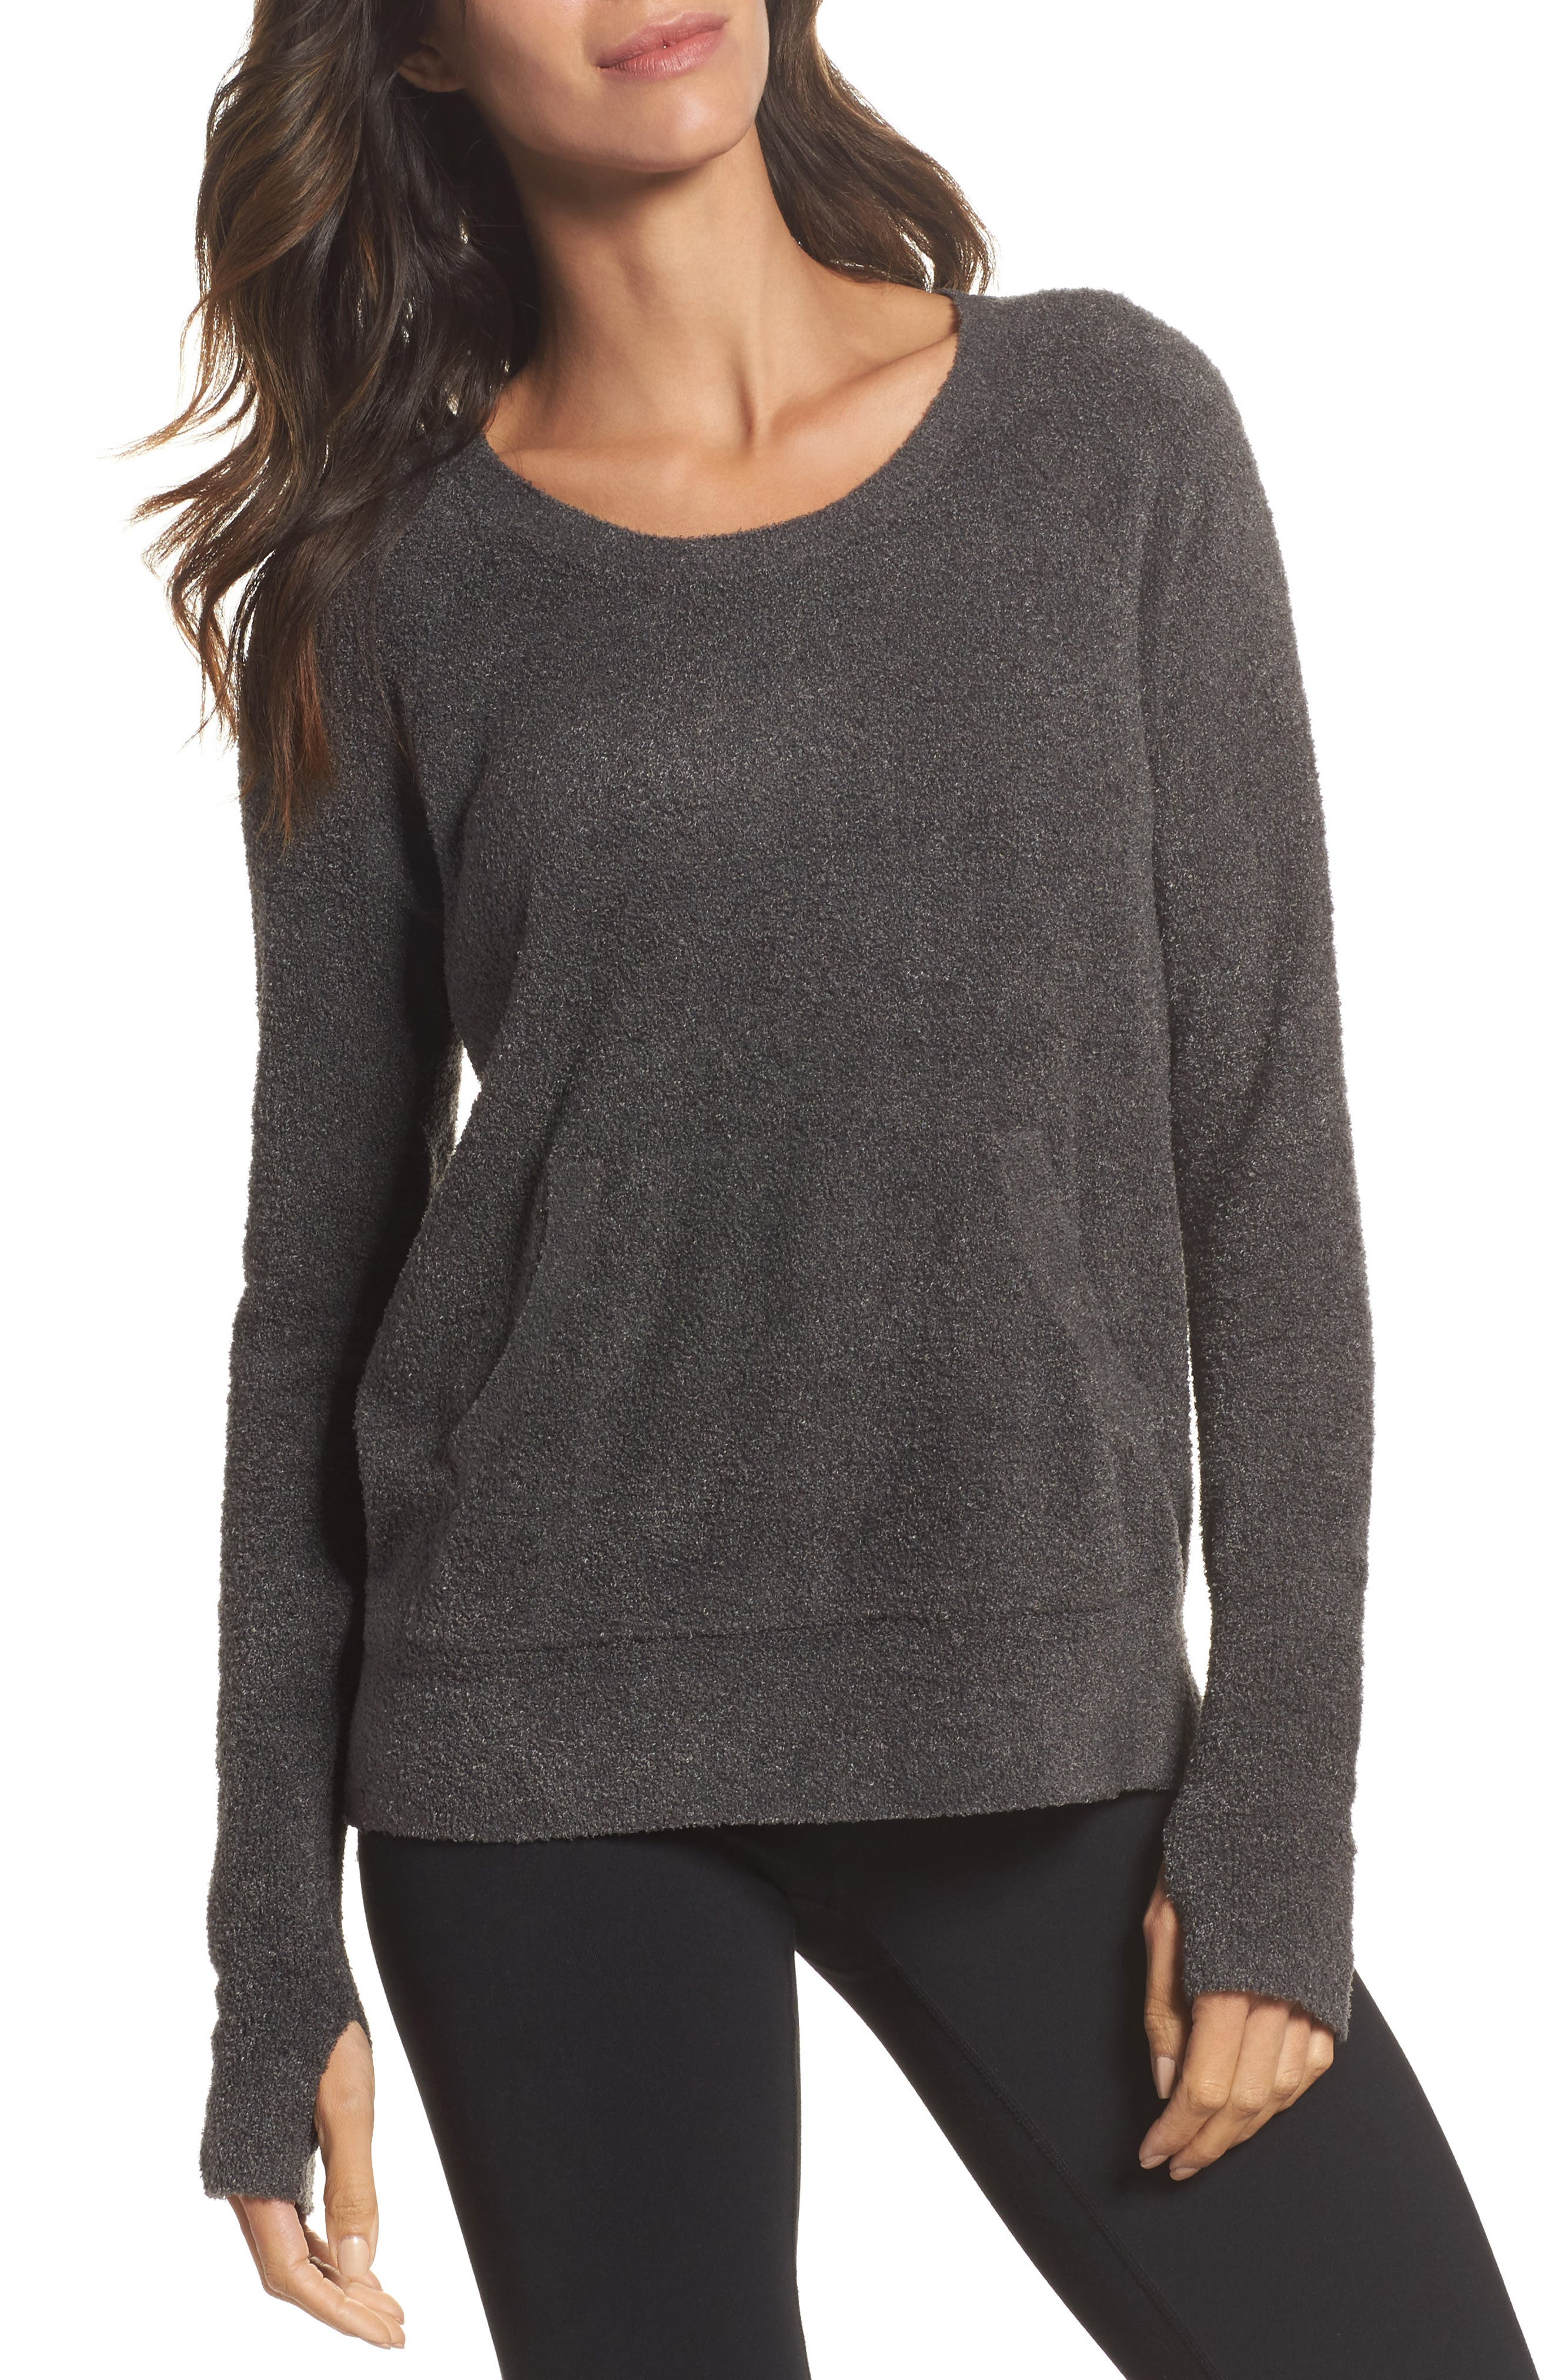 Cozychic Lite<sup>®</sup> Pullover,                         Main,                         color, Carbon